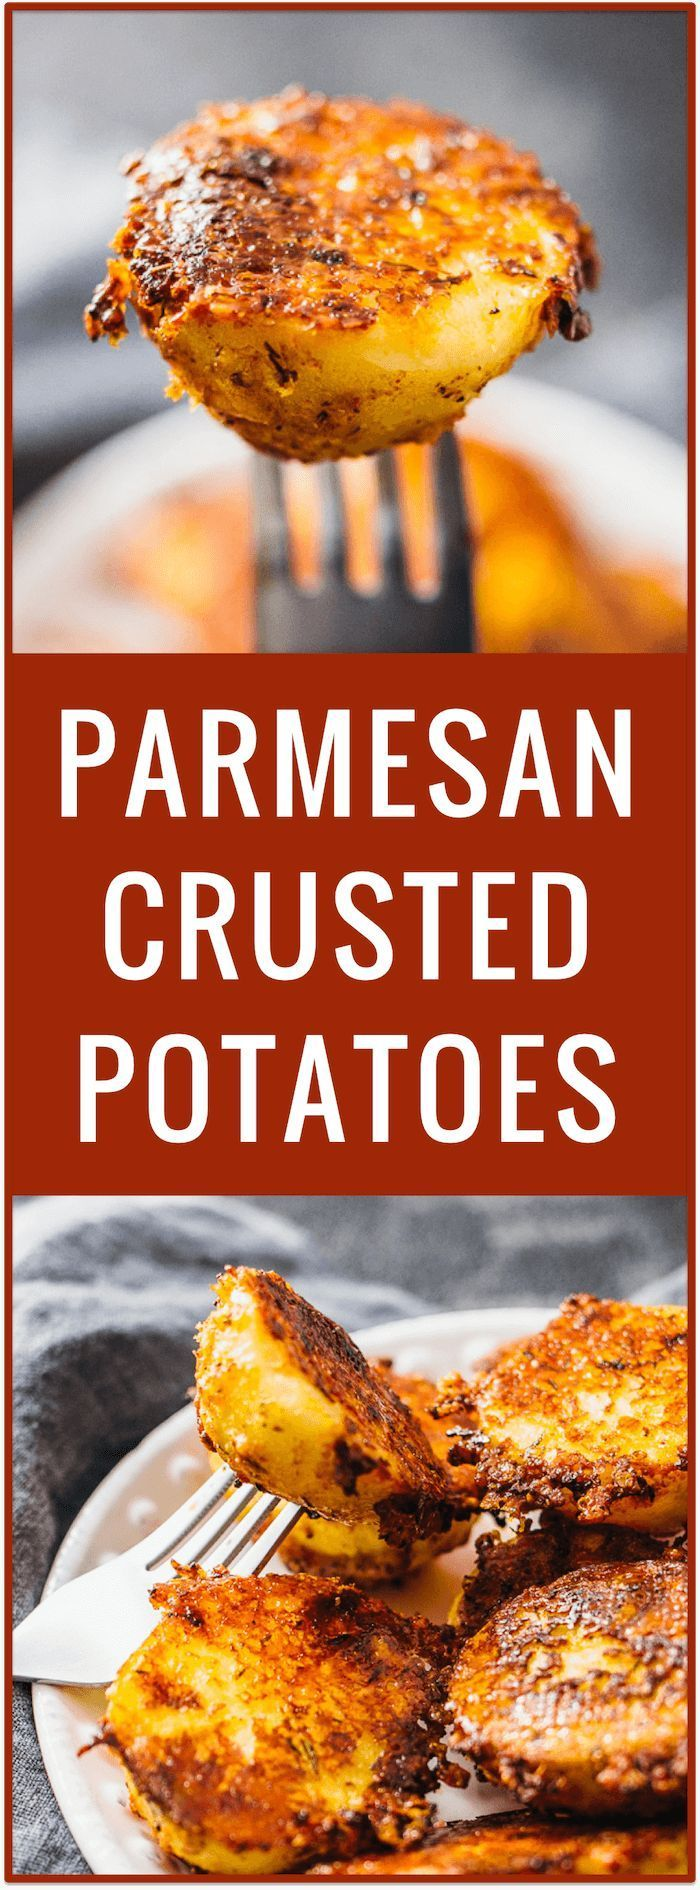 crispy parmesan crusted potatoes | crispy parmesan potatoes | parmesan upside down baked potatoes | parmesan roasted baby potatoes | easy simple appetizer recipe | side dish | party food via /savory_tooth/ Try this with turnips or radishes instead of potatoes for a low carb option